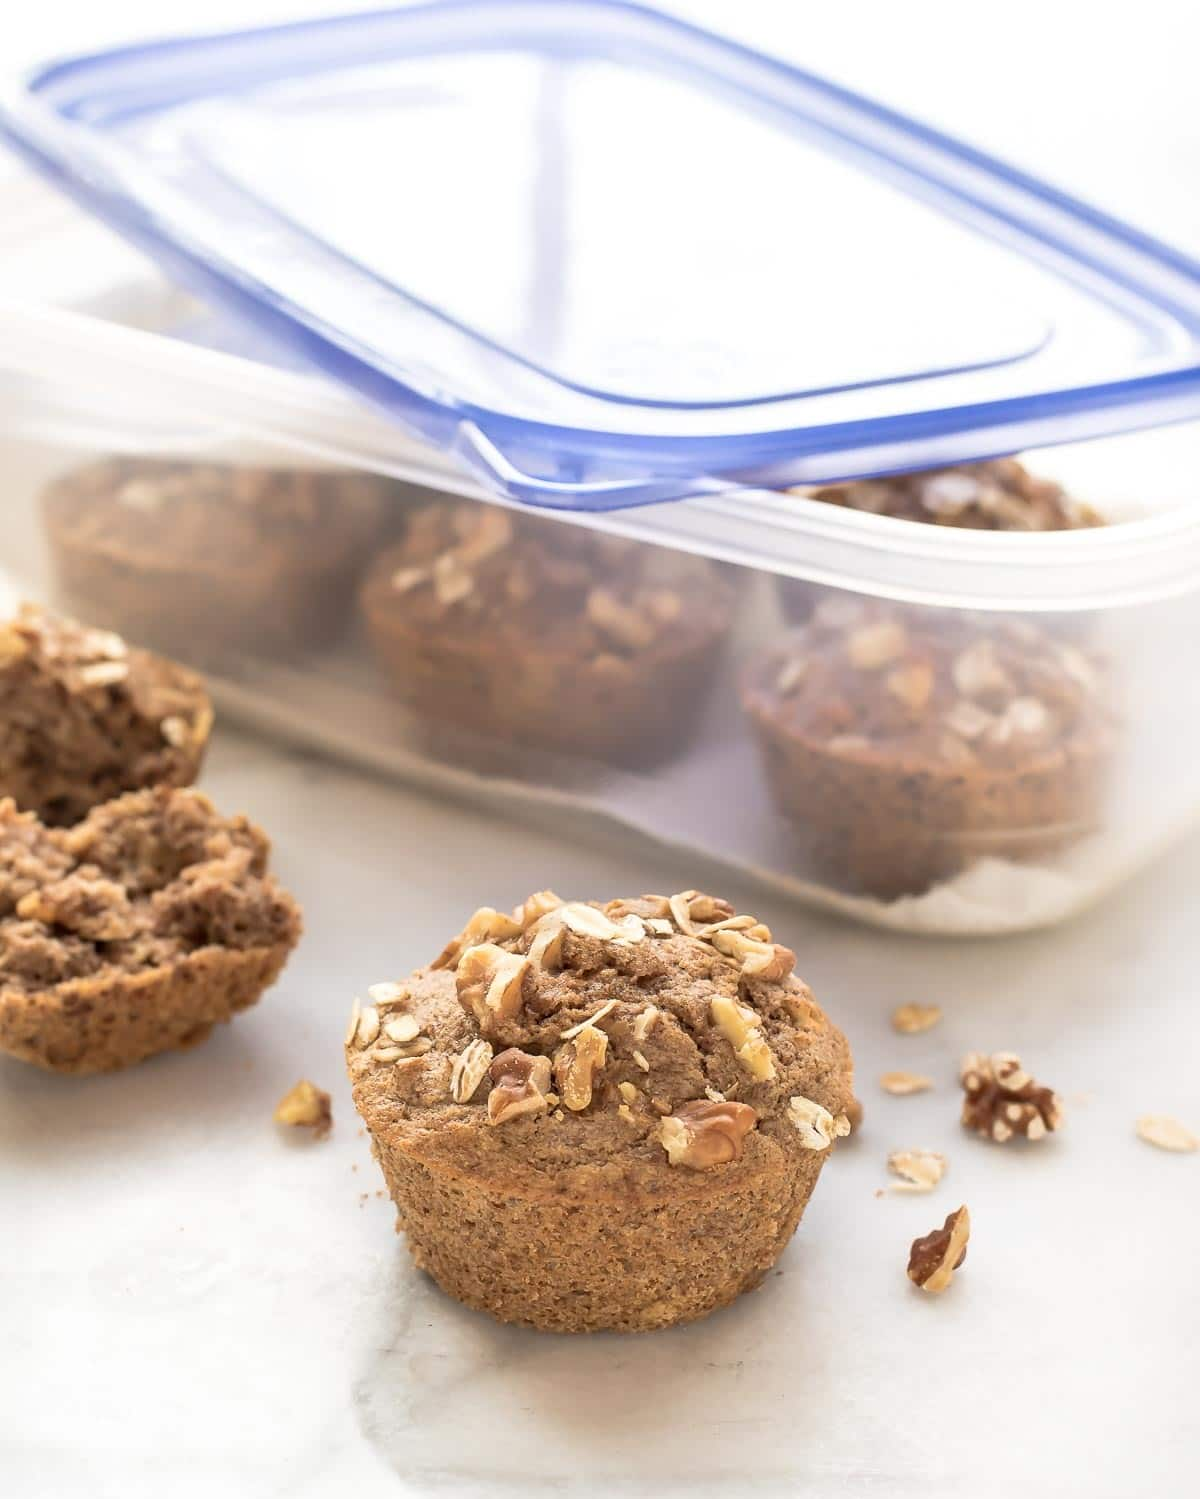 This one trick will keep your muffins fresh for longer. No more soggy muffins! Here's how to store them the right way. @wellplated